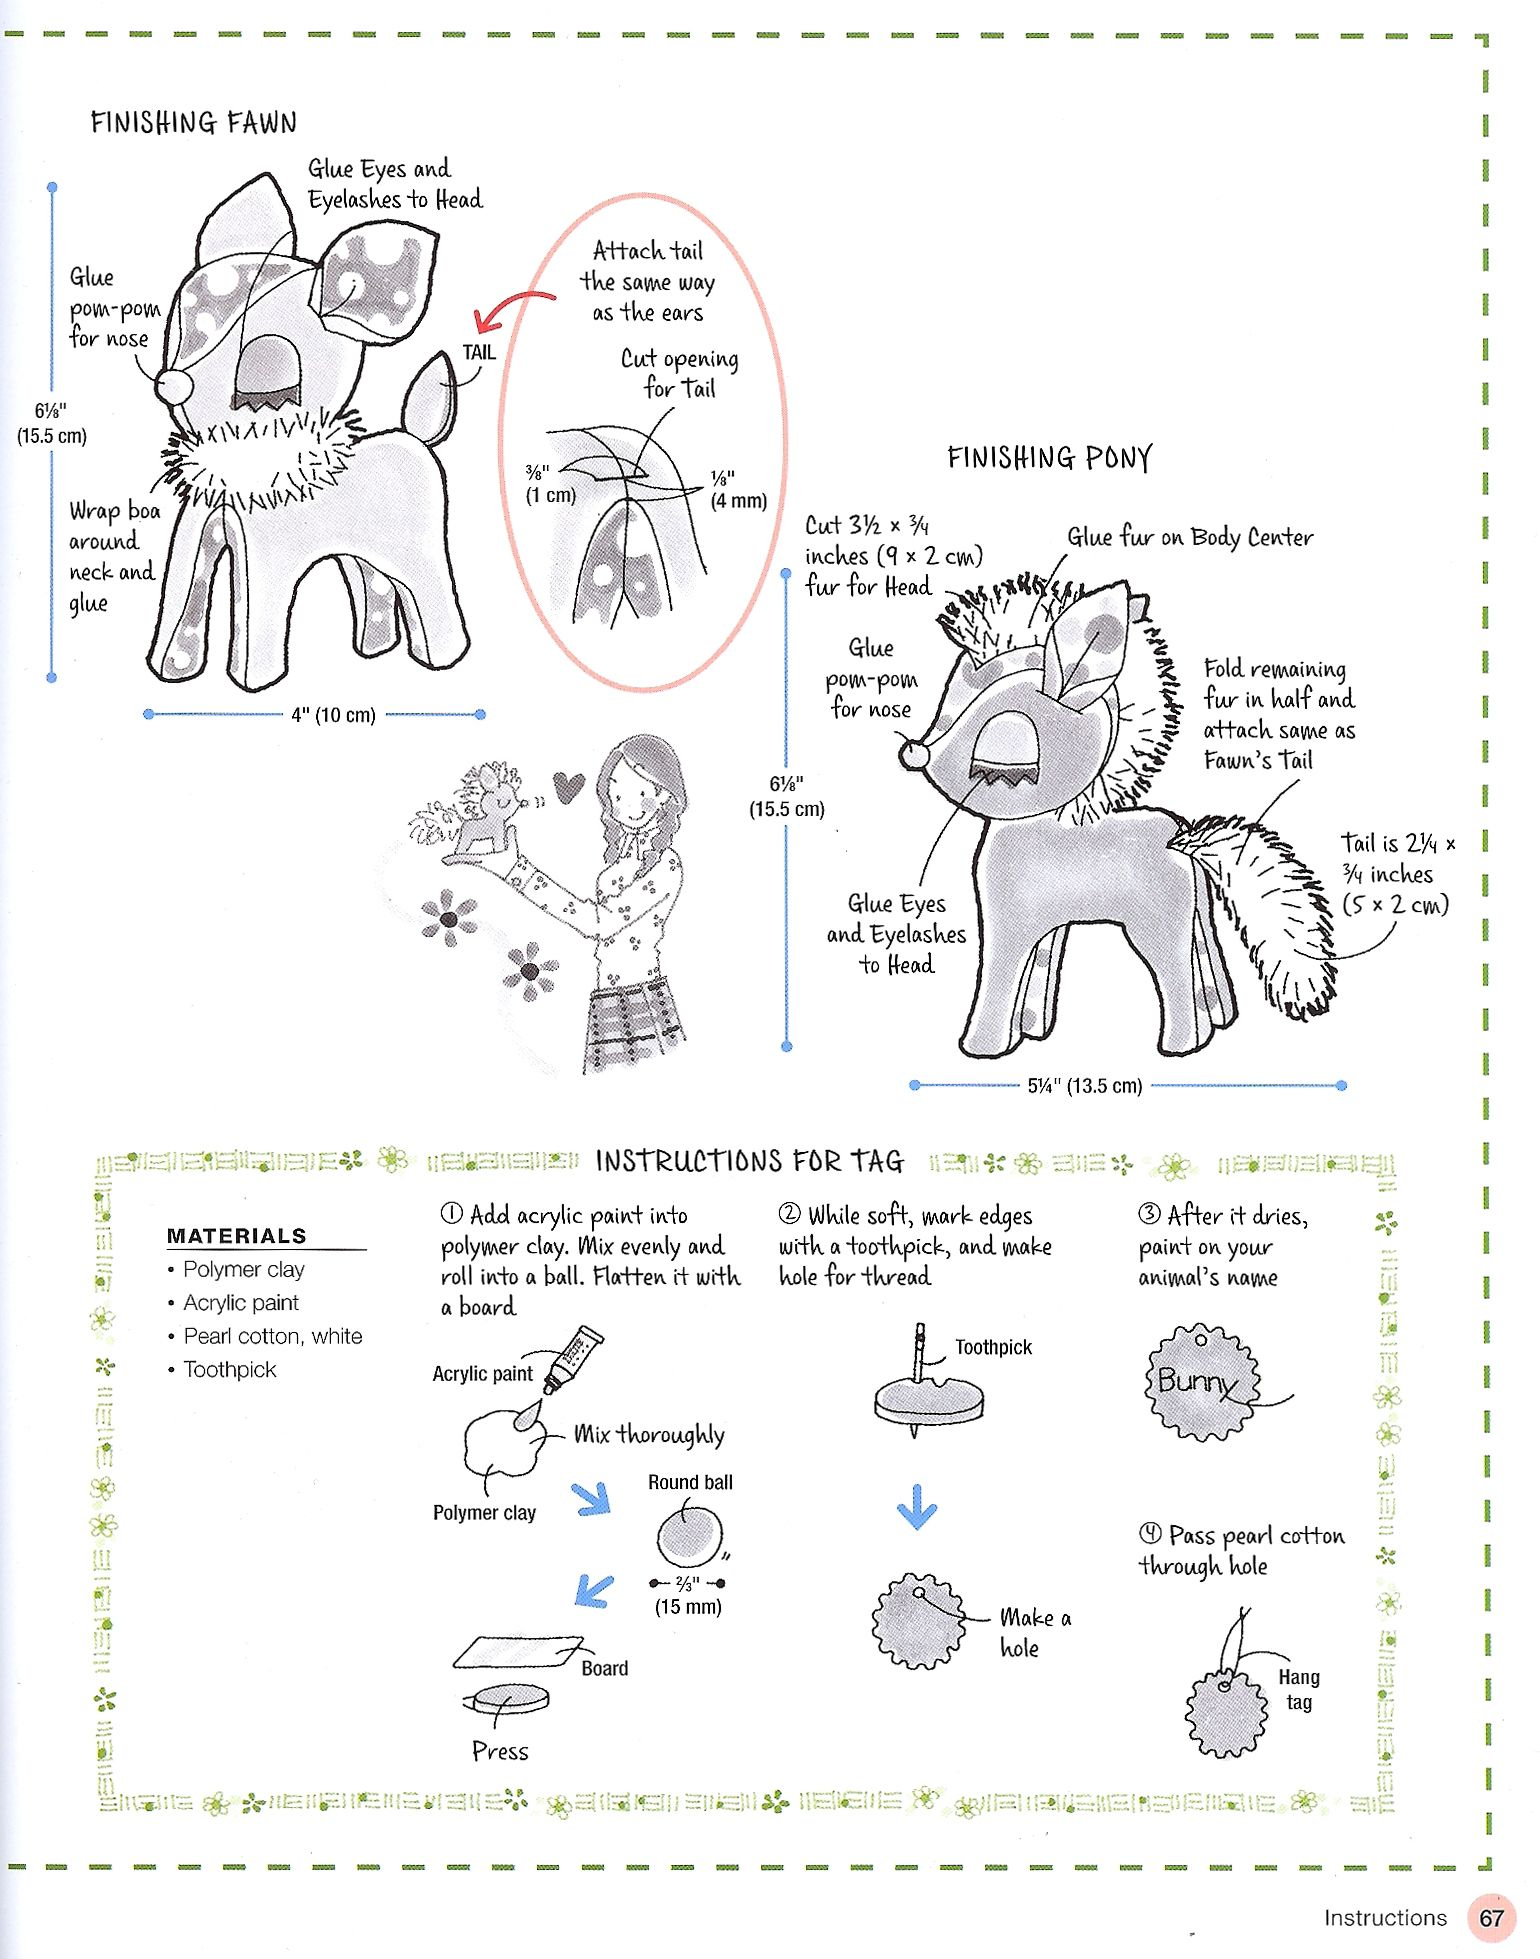 My Little Pony Patterns For Fan Art Diy Projects  My Little Pony Sewing Template For Majesty